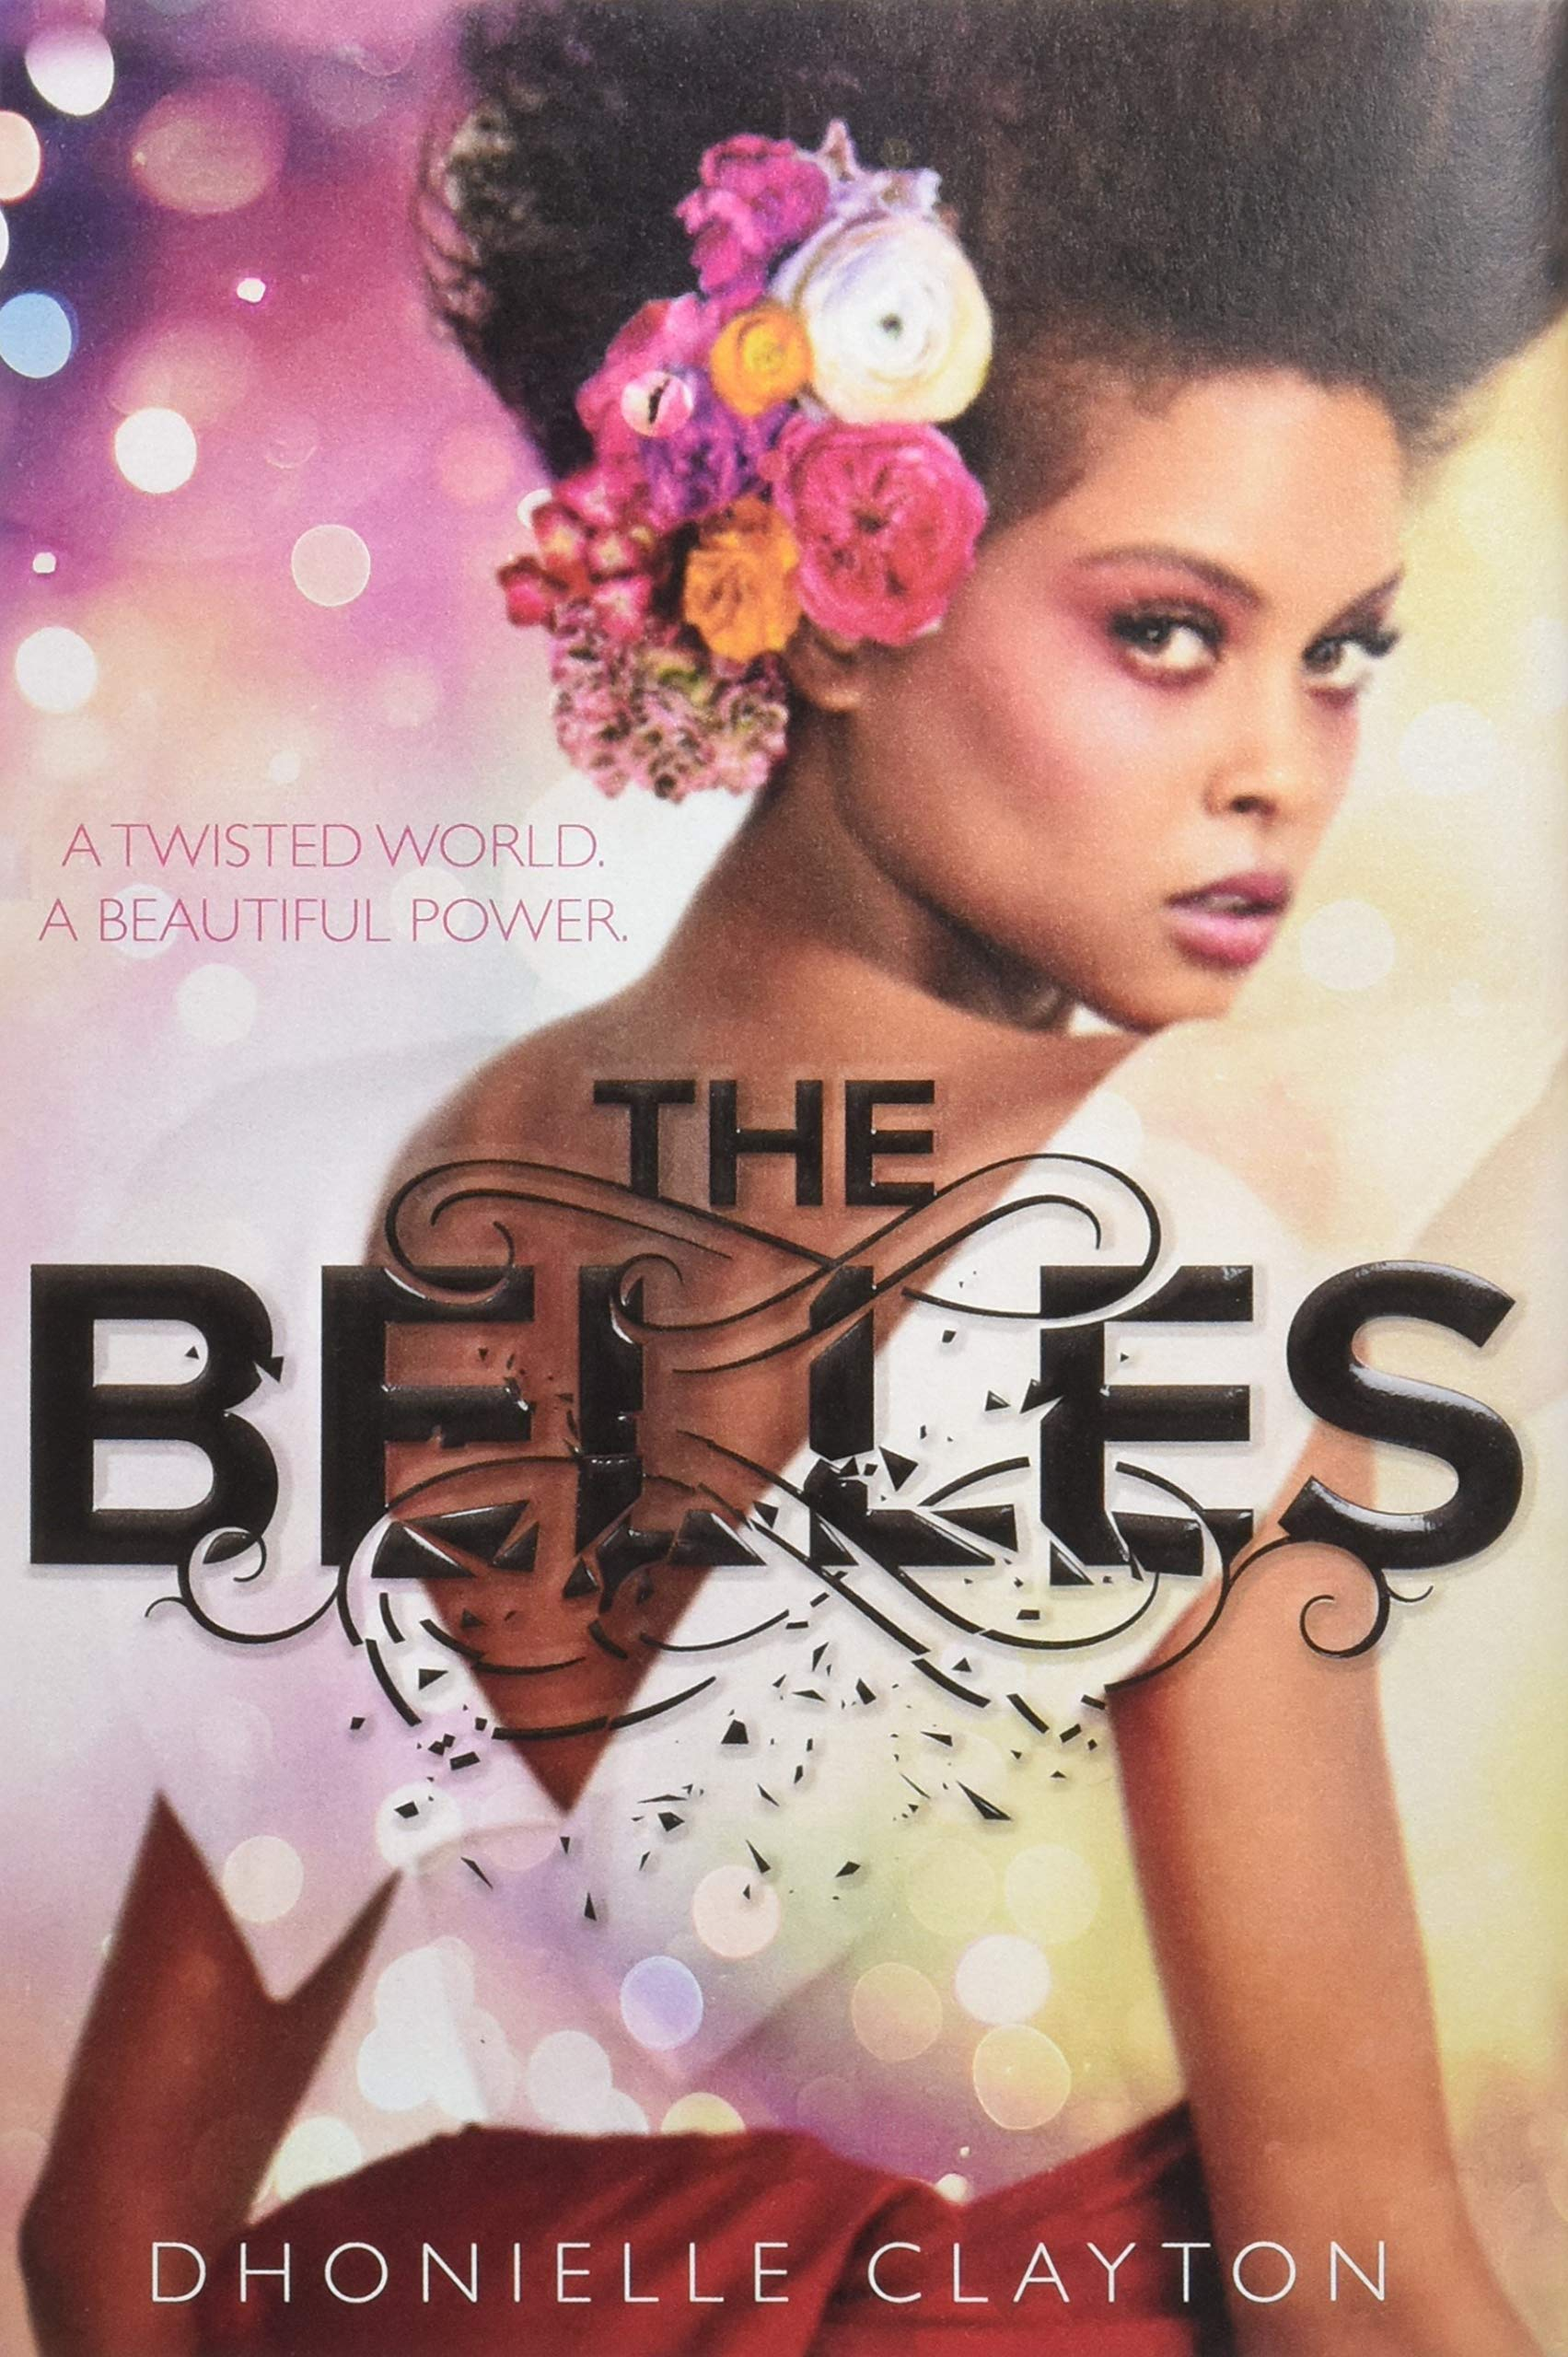 The Belles: Amazon.co.uk: Clayton, Dhonielle: 9781484728499: Books